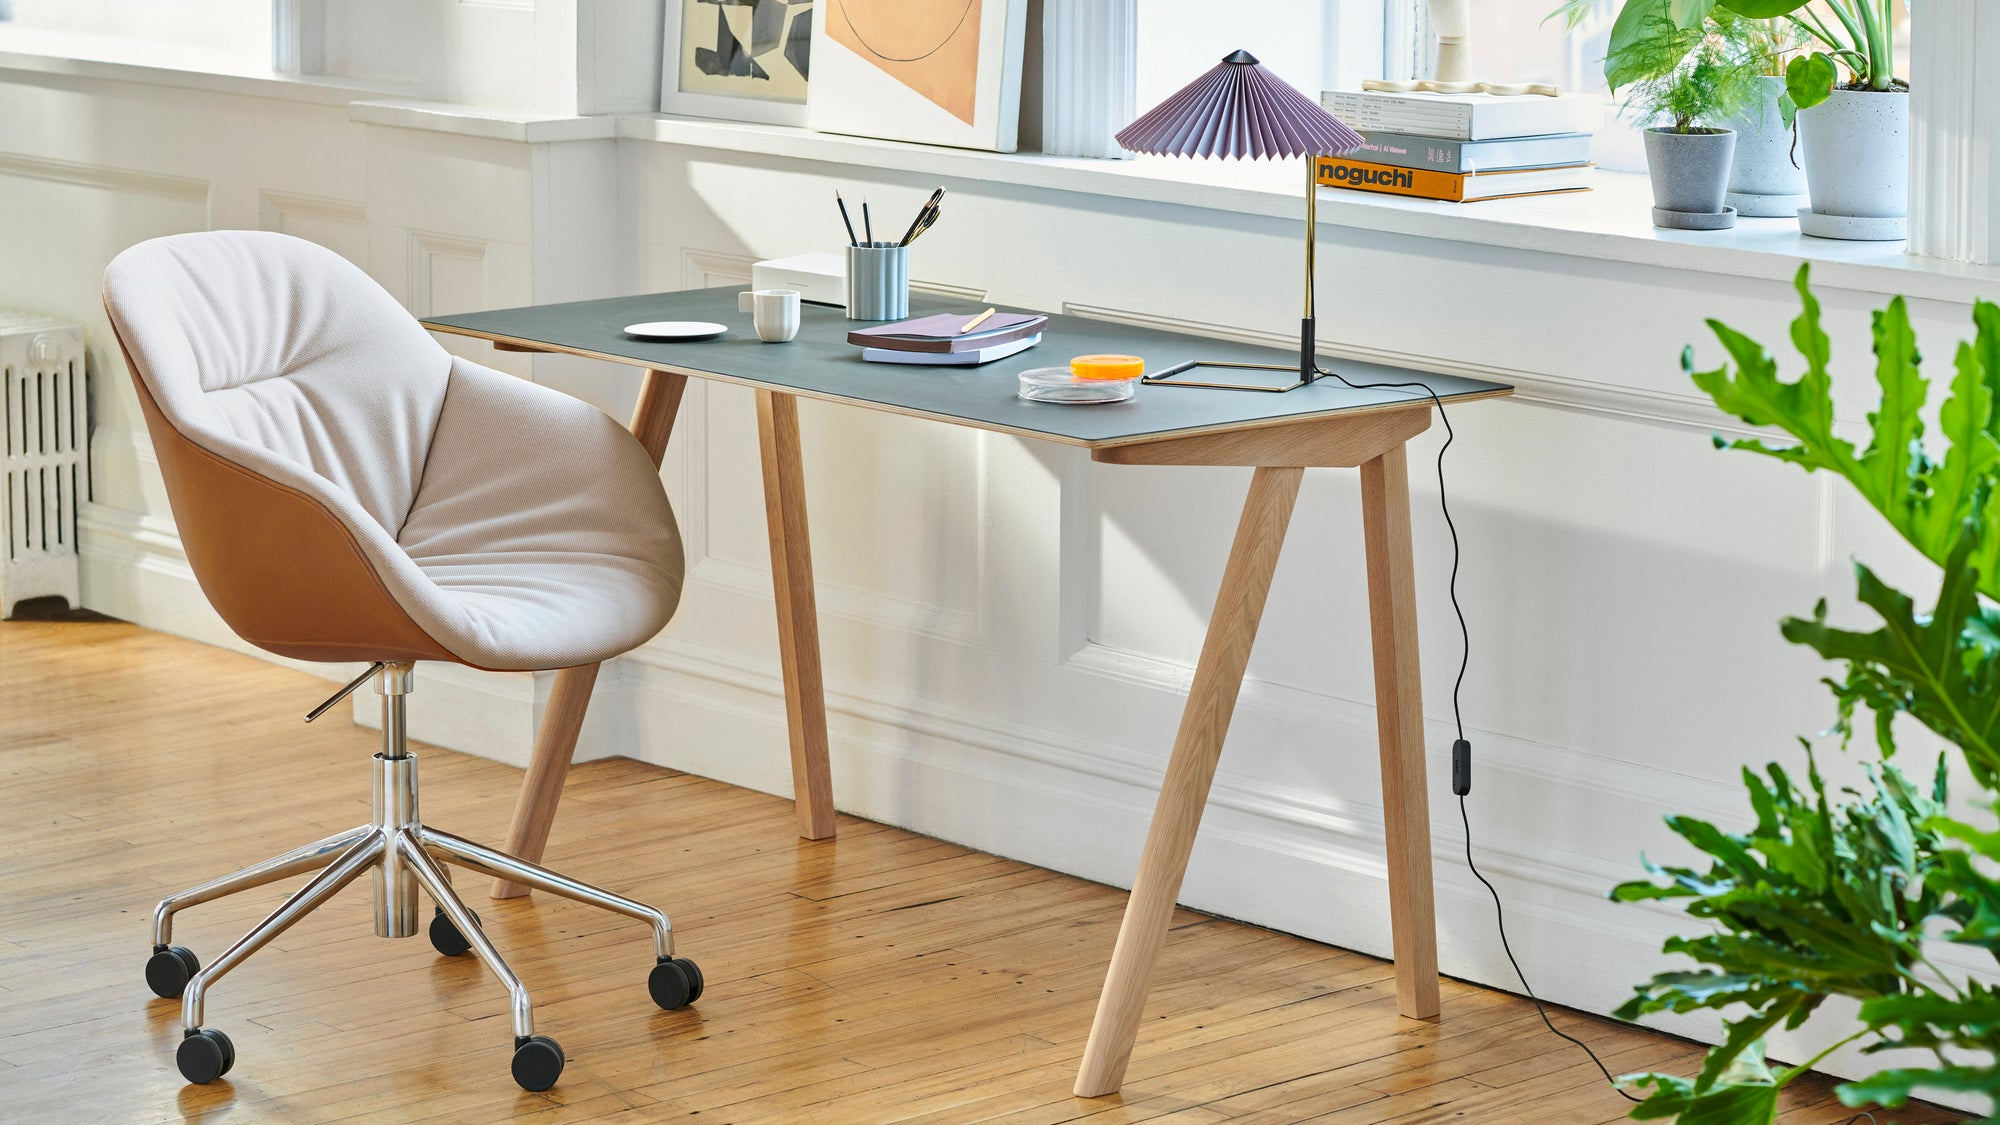 UPDATED: Everything You'll Need to Work from Home